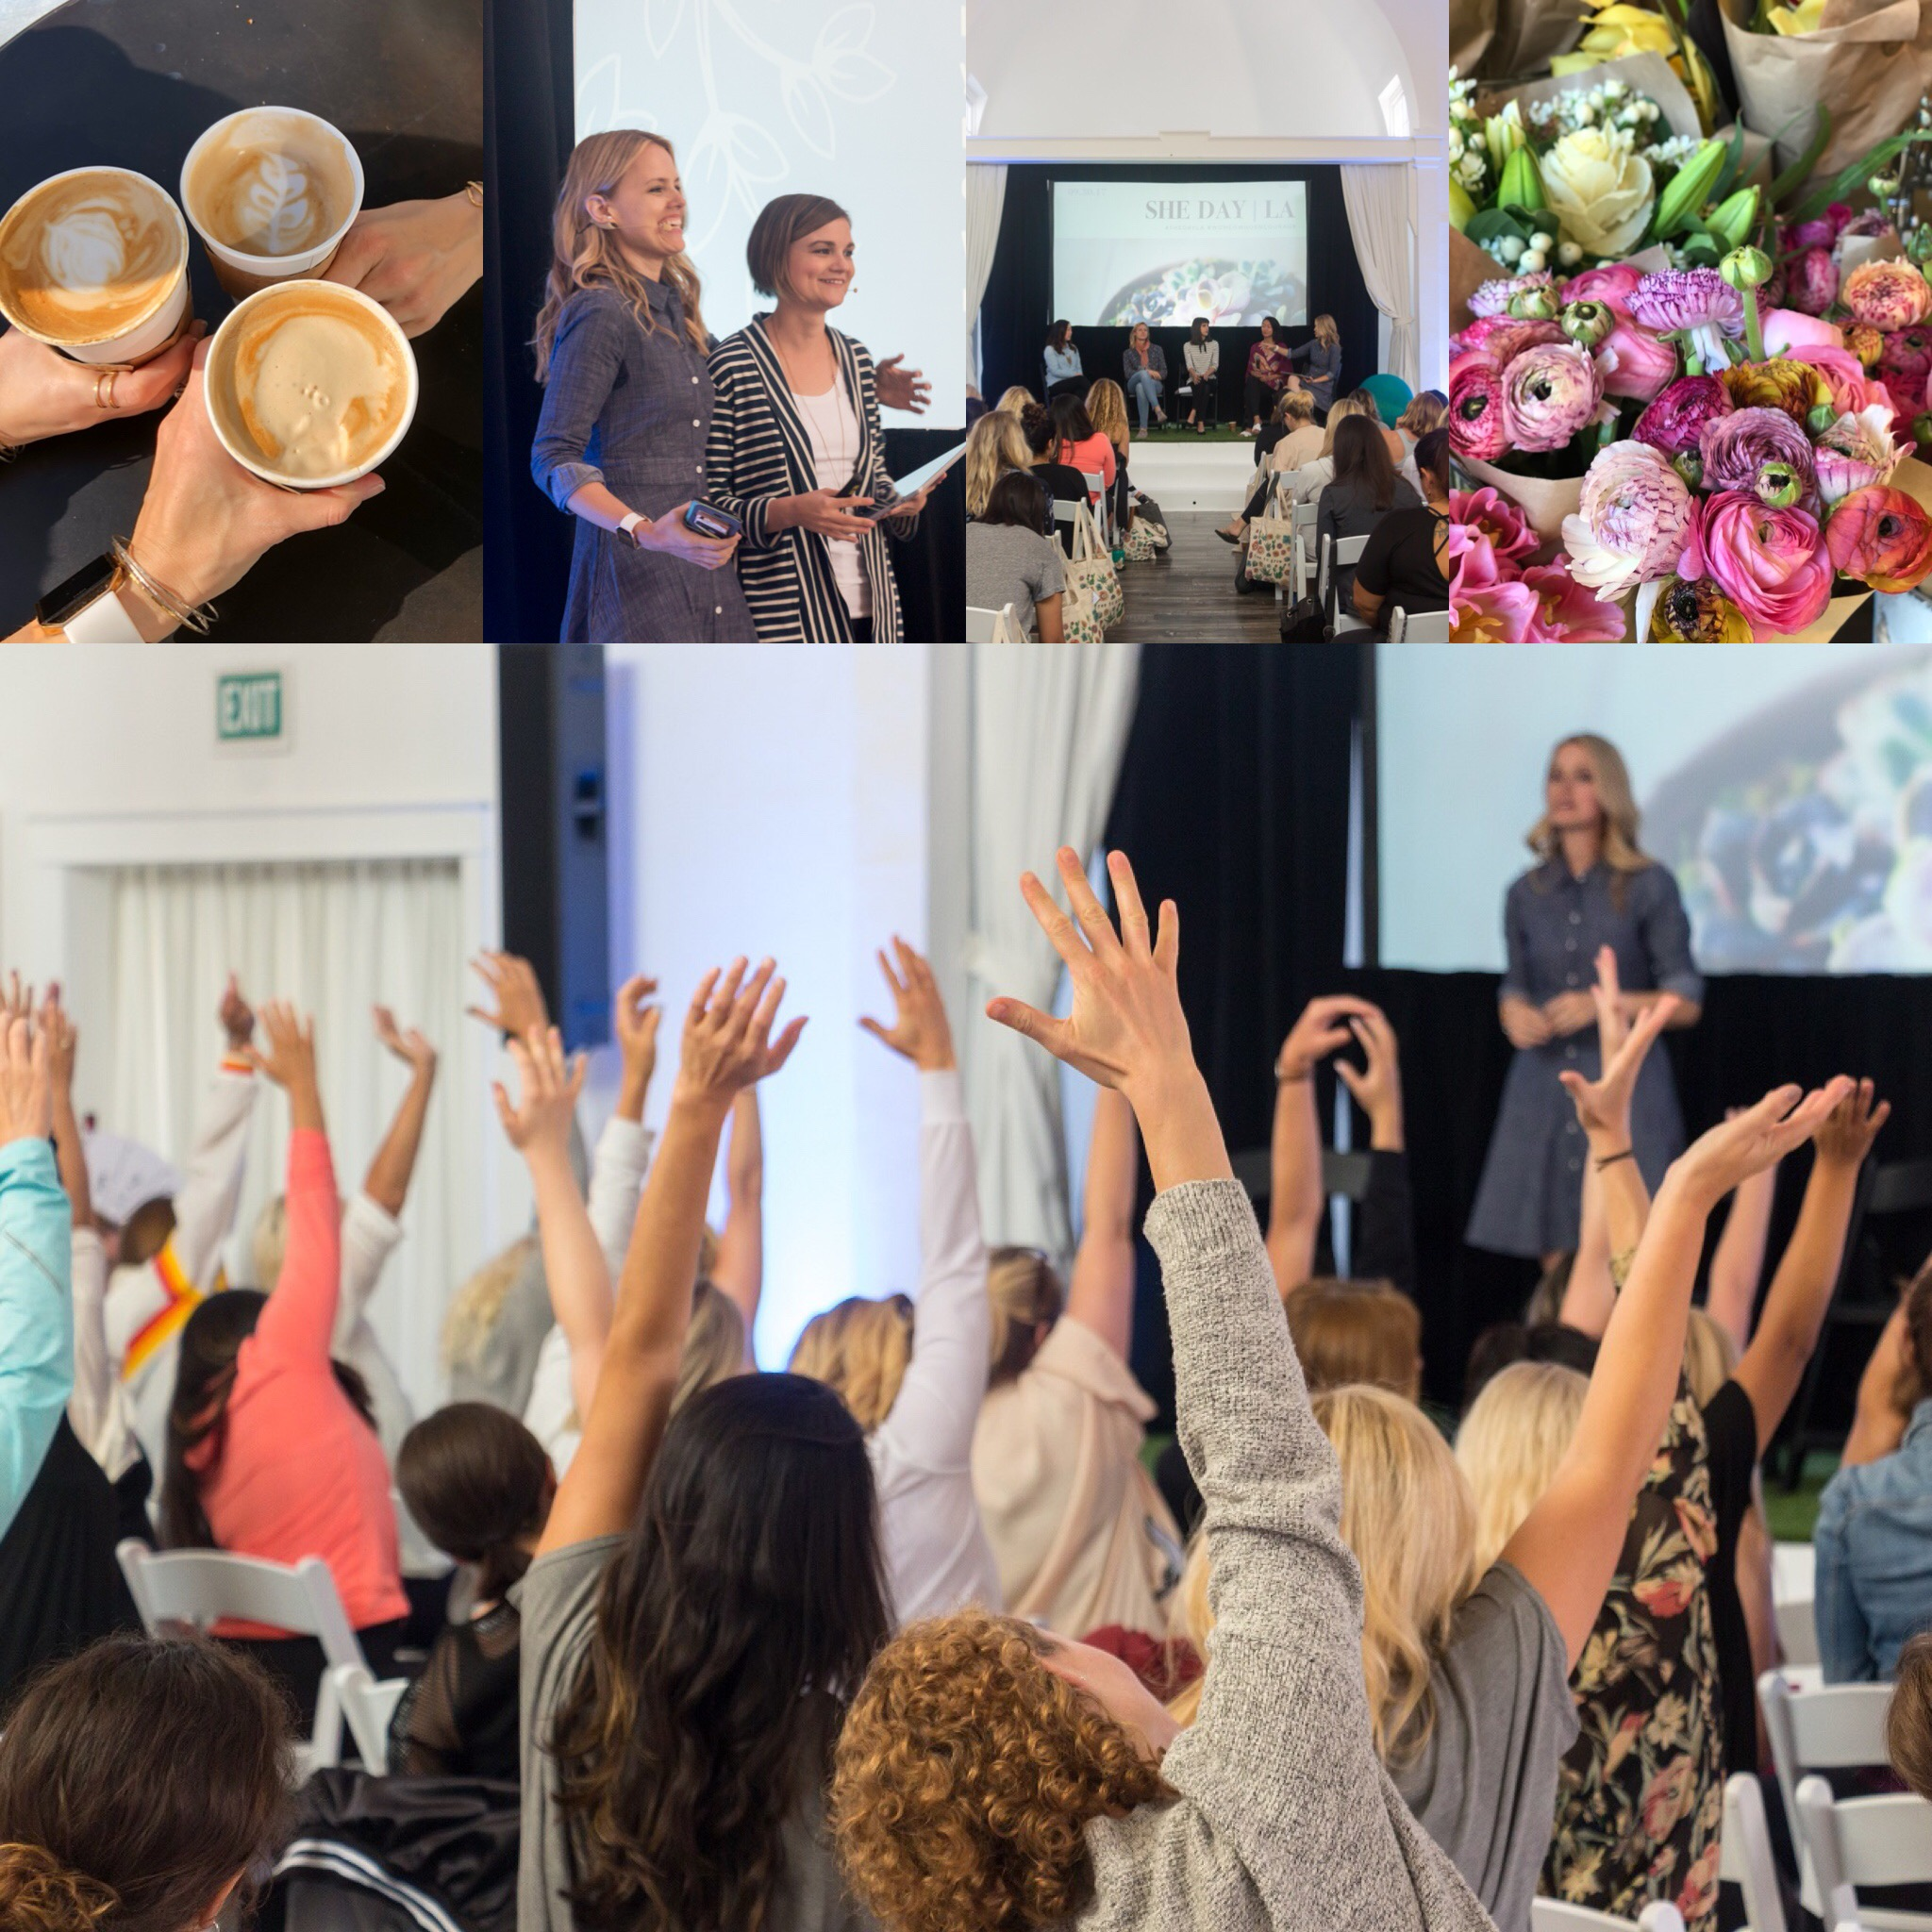 SHE Day is a day of self care for women! Inspiring education, yoga, essential oils, and more.